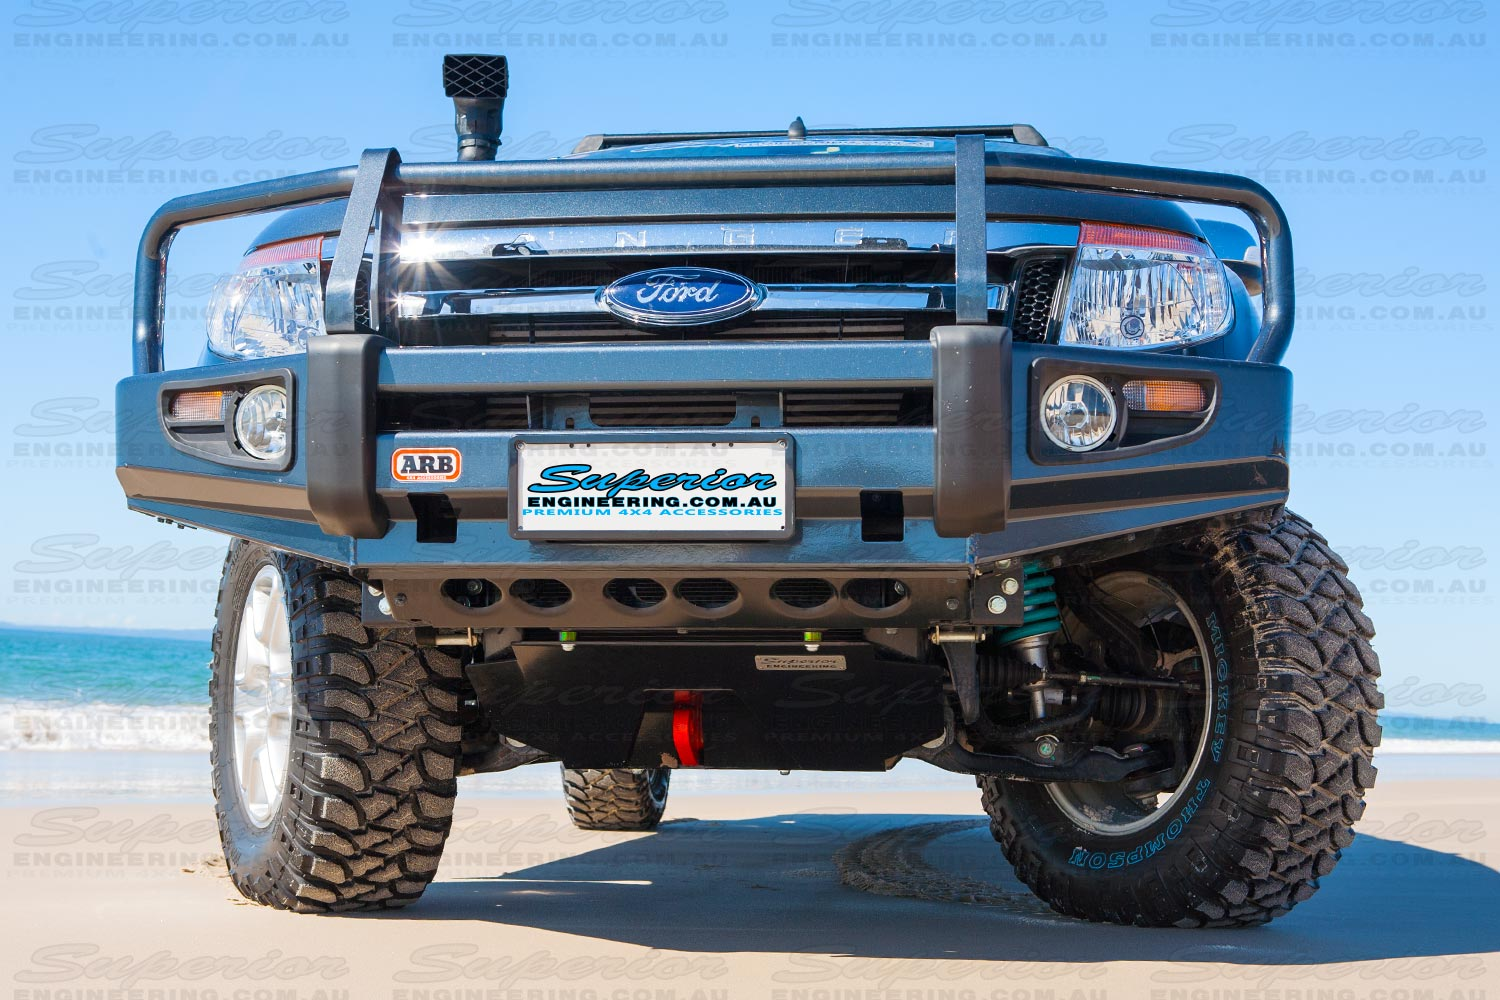 Front view of the Ford Ranger Bash Plate and Recovery Point